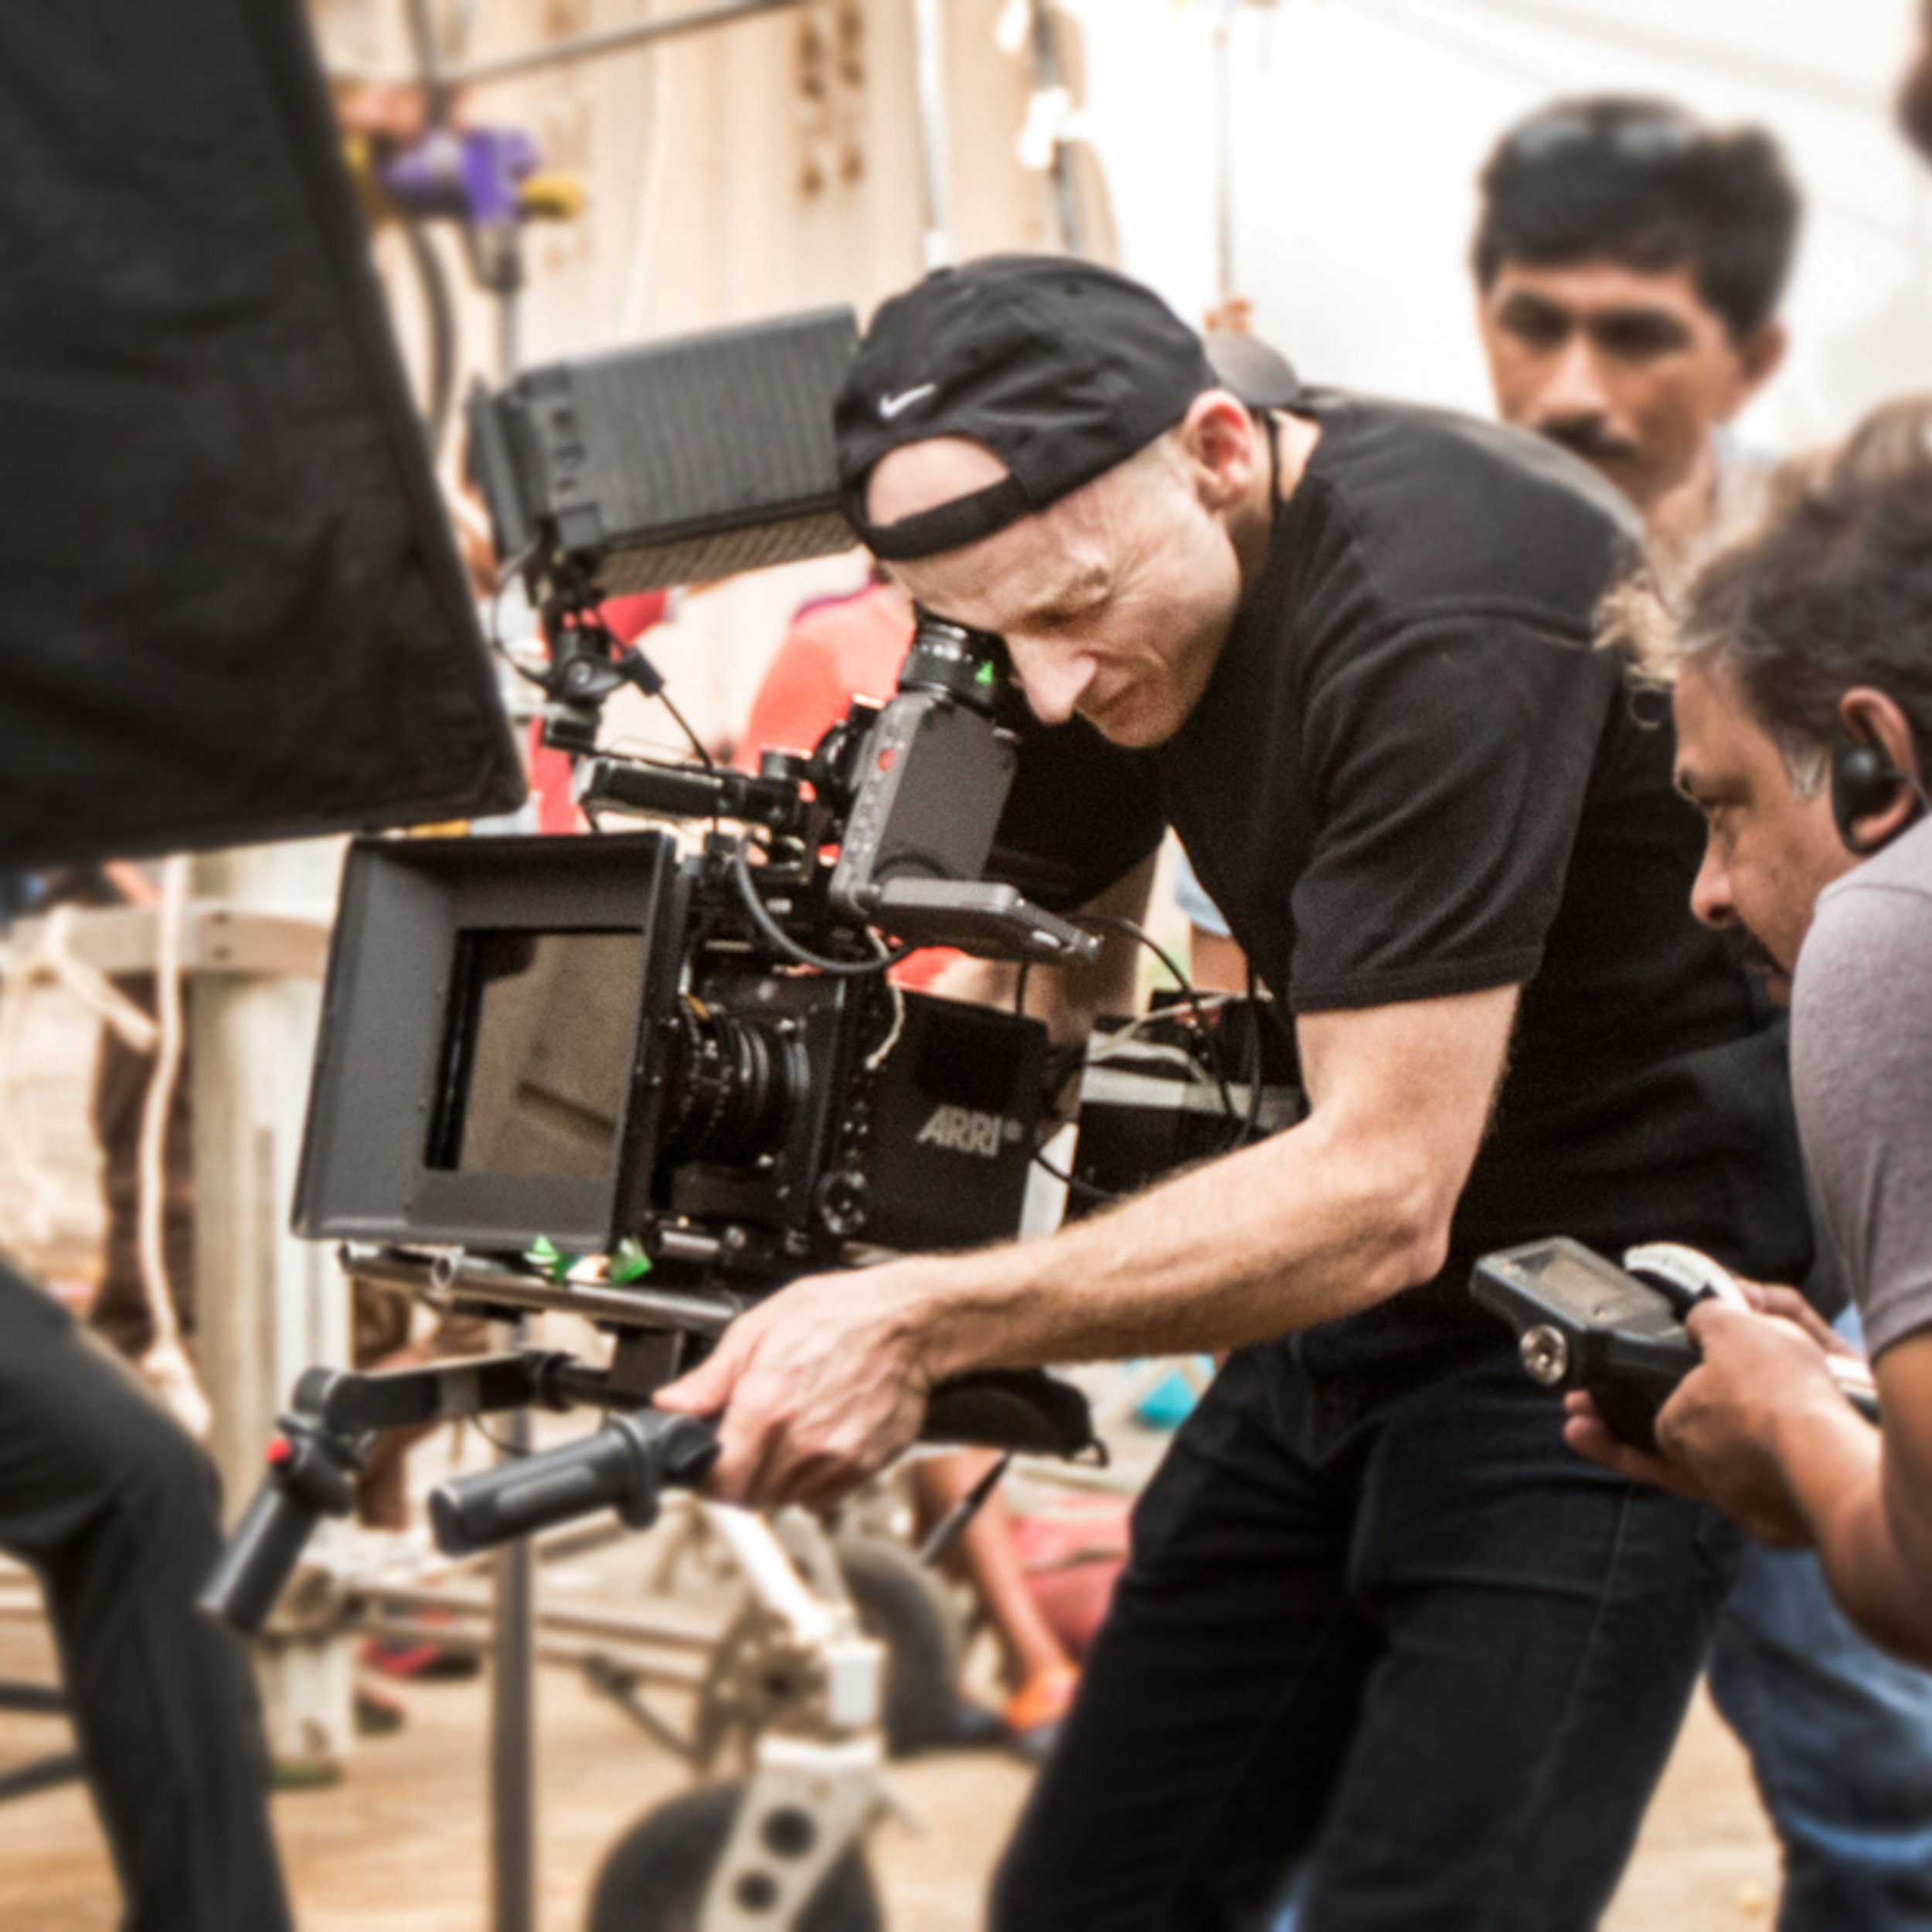 Mark Shooting in Mumbai 2017_sq.jpg